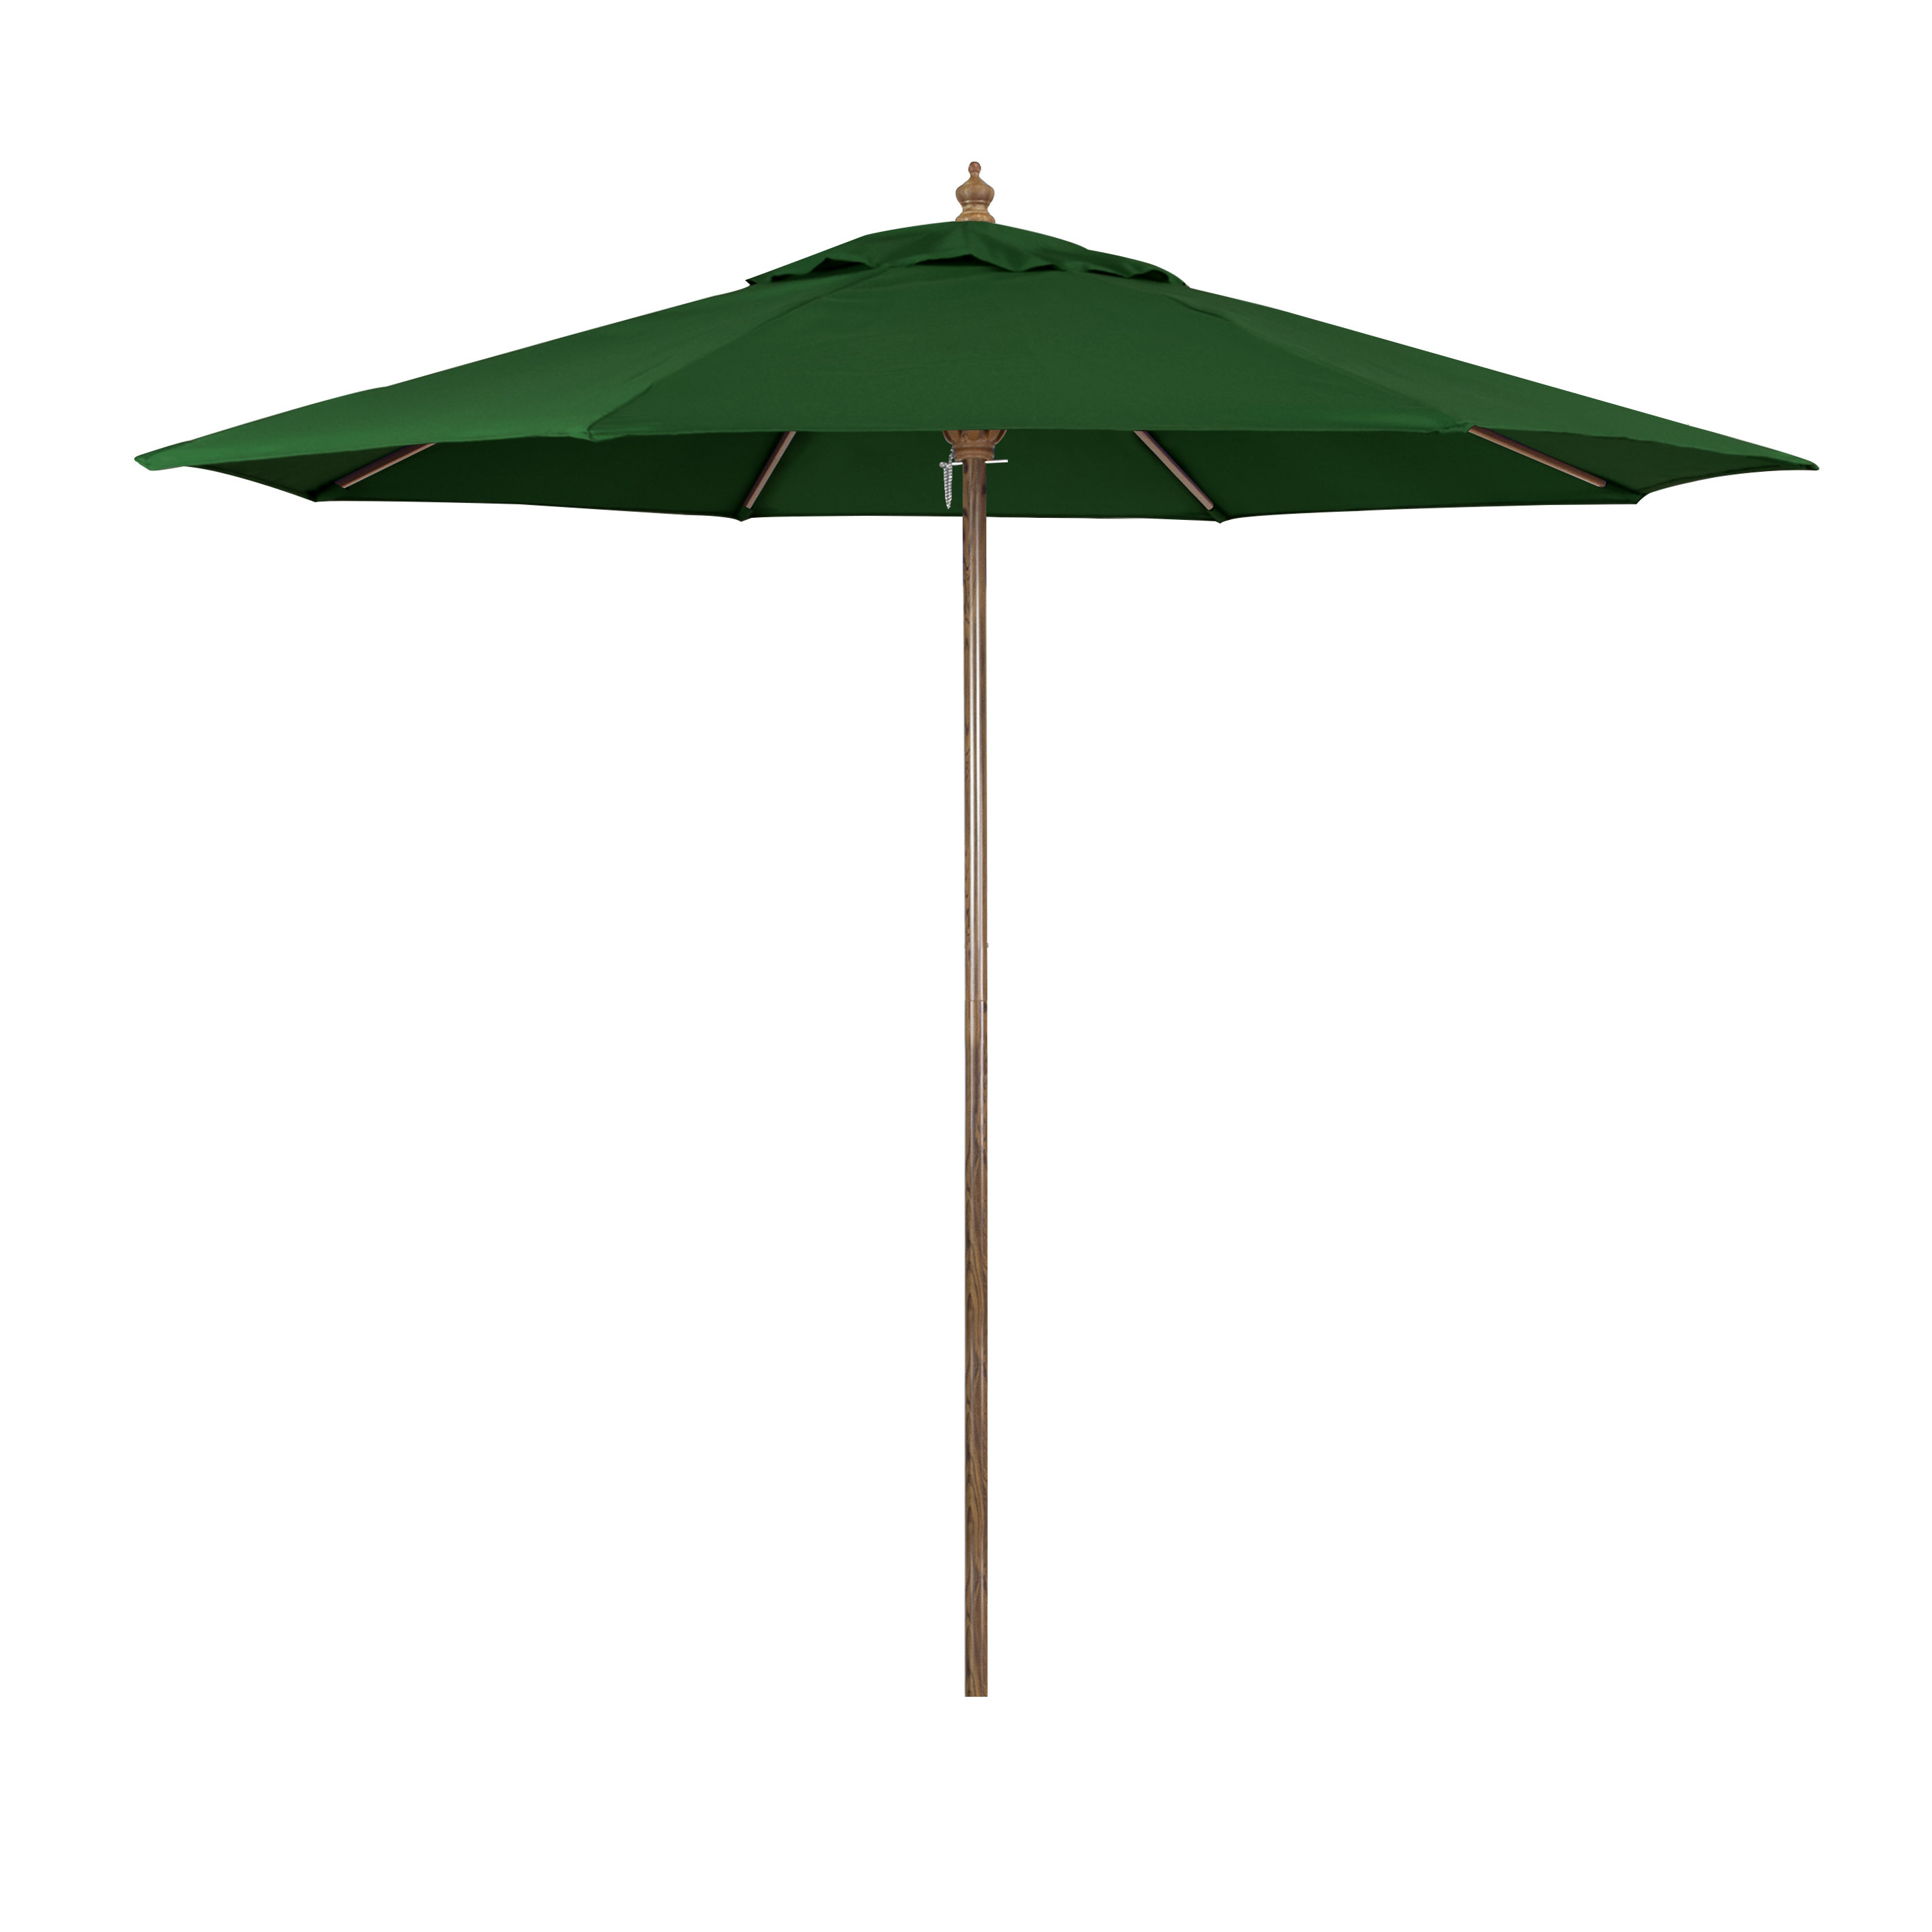 Ryant 9' Market Umbrella Throughout Widely Used Cardine Market Umbrellas (View 19 of 20)